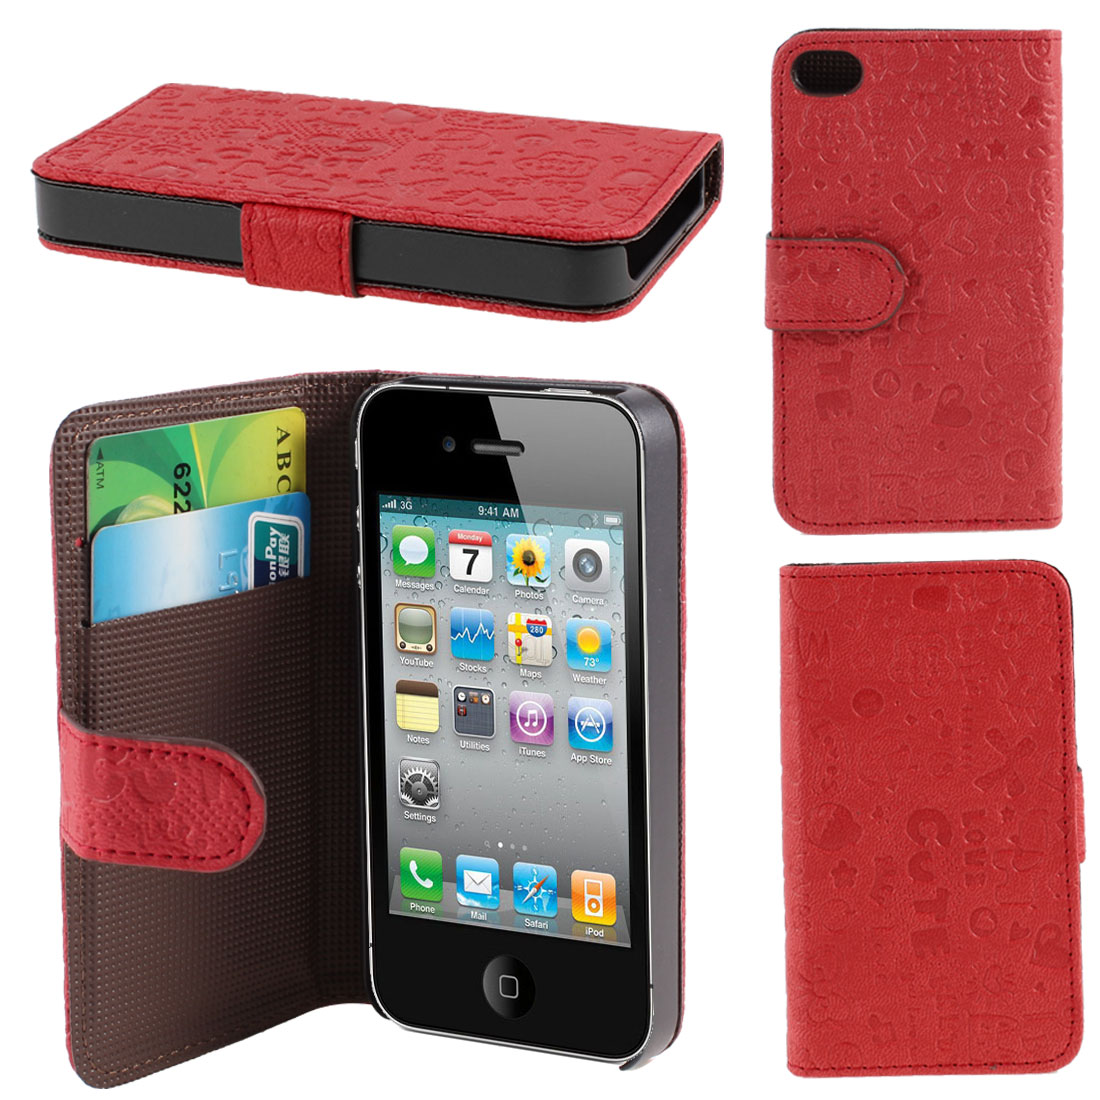 Red Cute Faerie PU Leather Card Holder Wallet Case Cover for iPhone 4 4S 4G 4GS